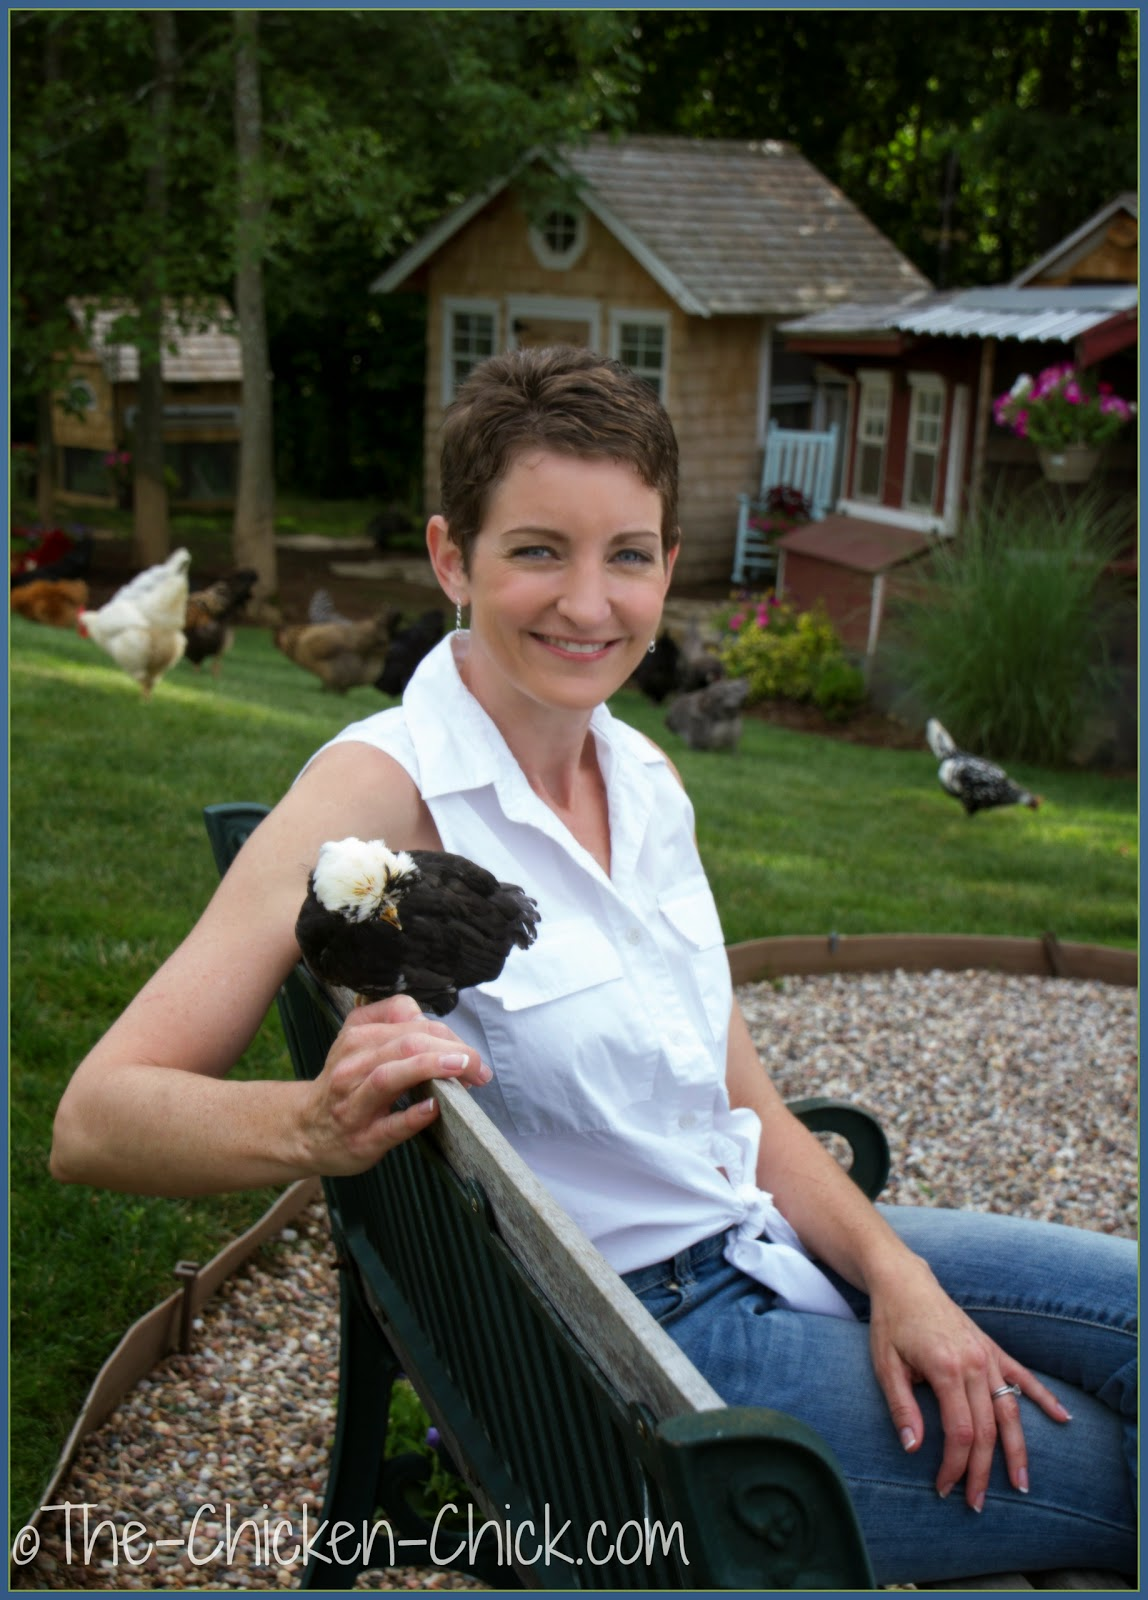 Kathy Shea Mormino, The Chicken Chick